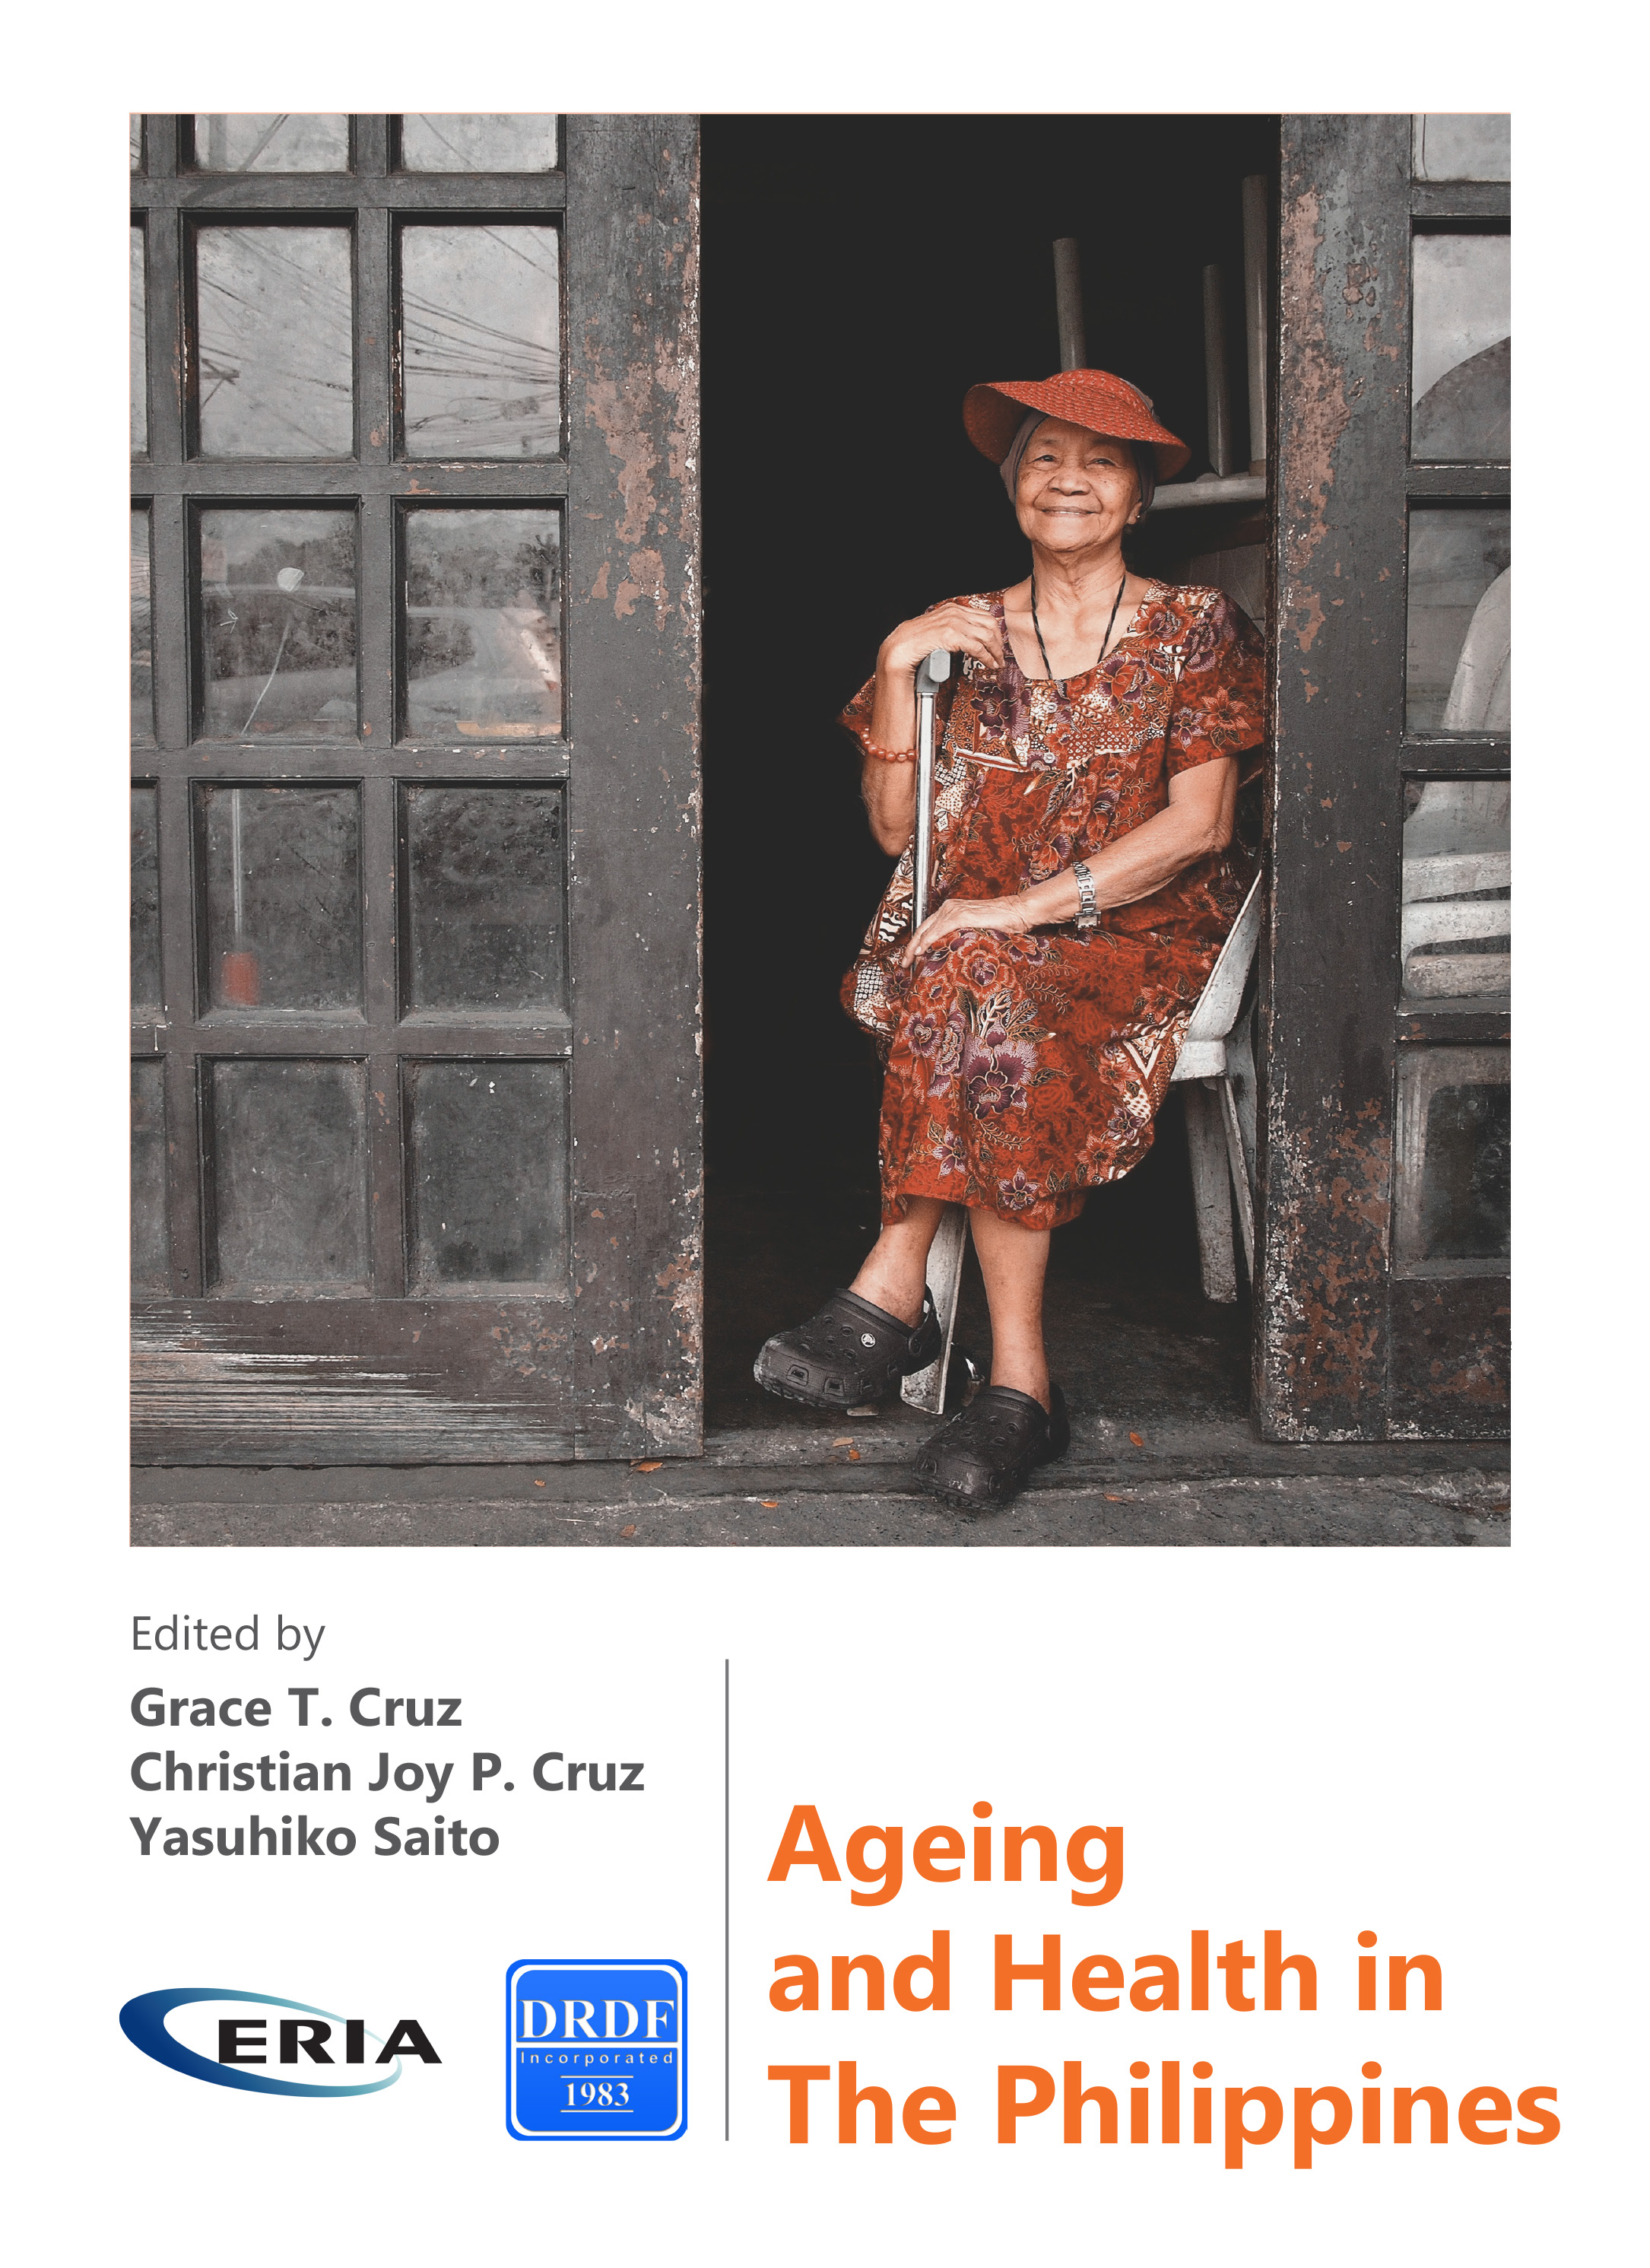 Ageing and Health in the Philippines: Findings from the 2018 LSAHP